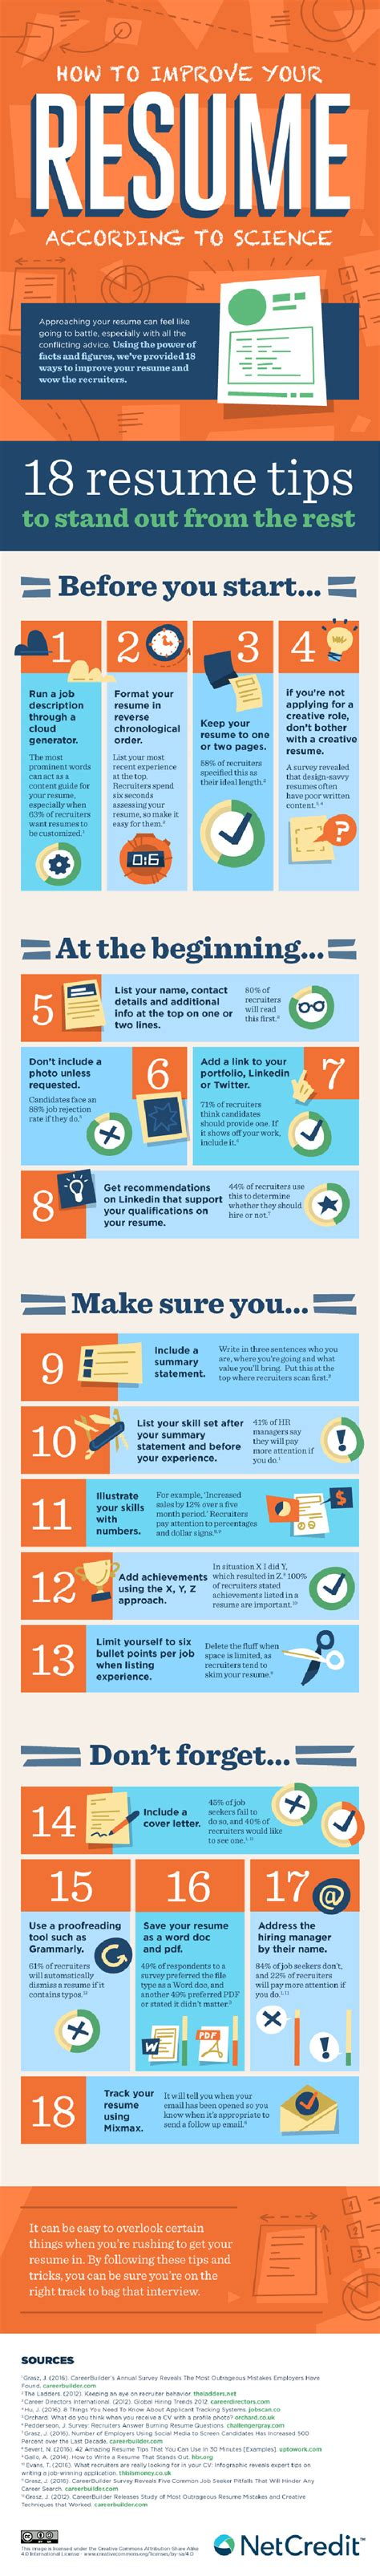 18 ways to improve your resume backed by science